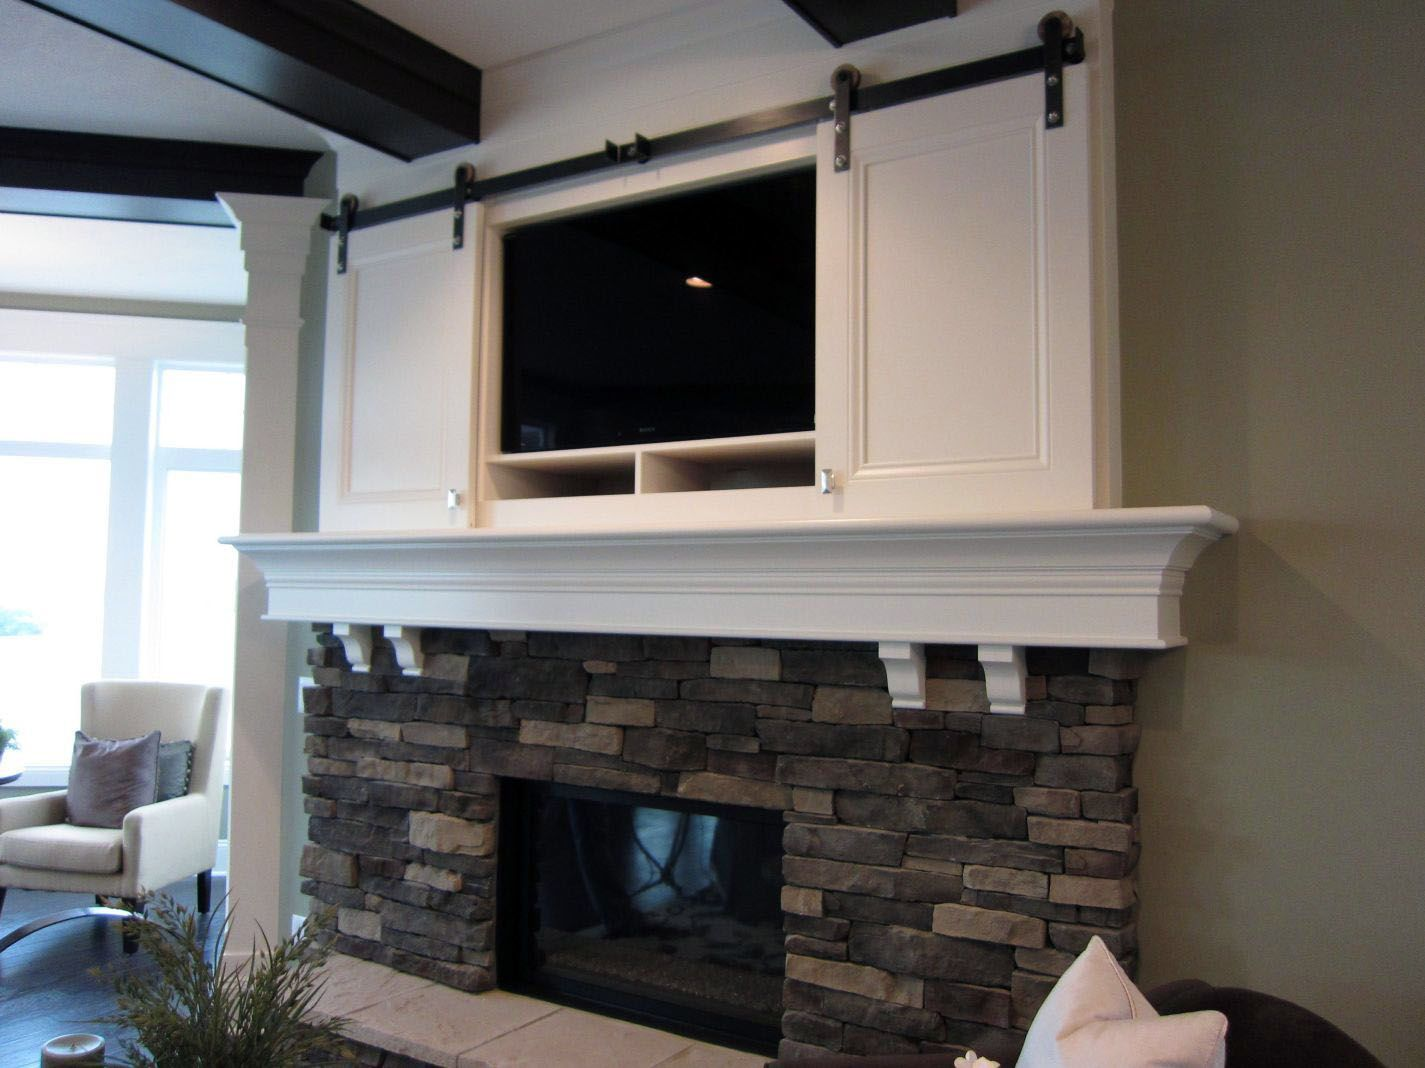 3 Myths About Mounting Tvs Over Fireplaces Wood Fireplace Surrounds Fireplace Design Tv Above Fireplace